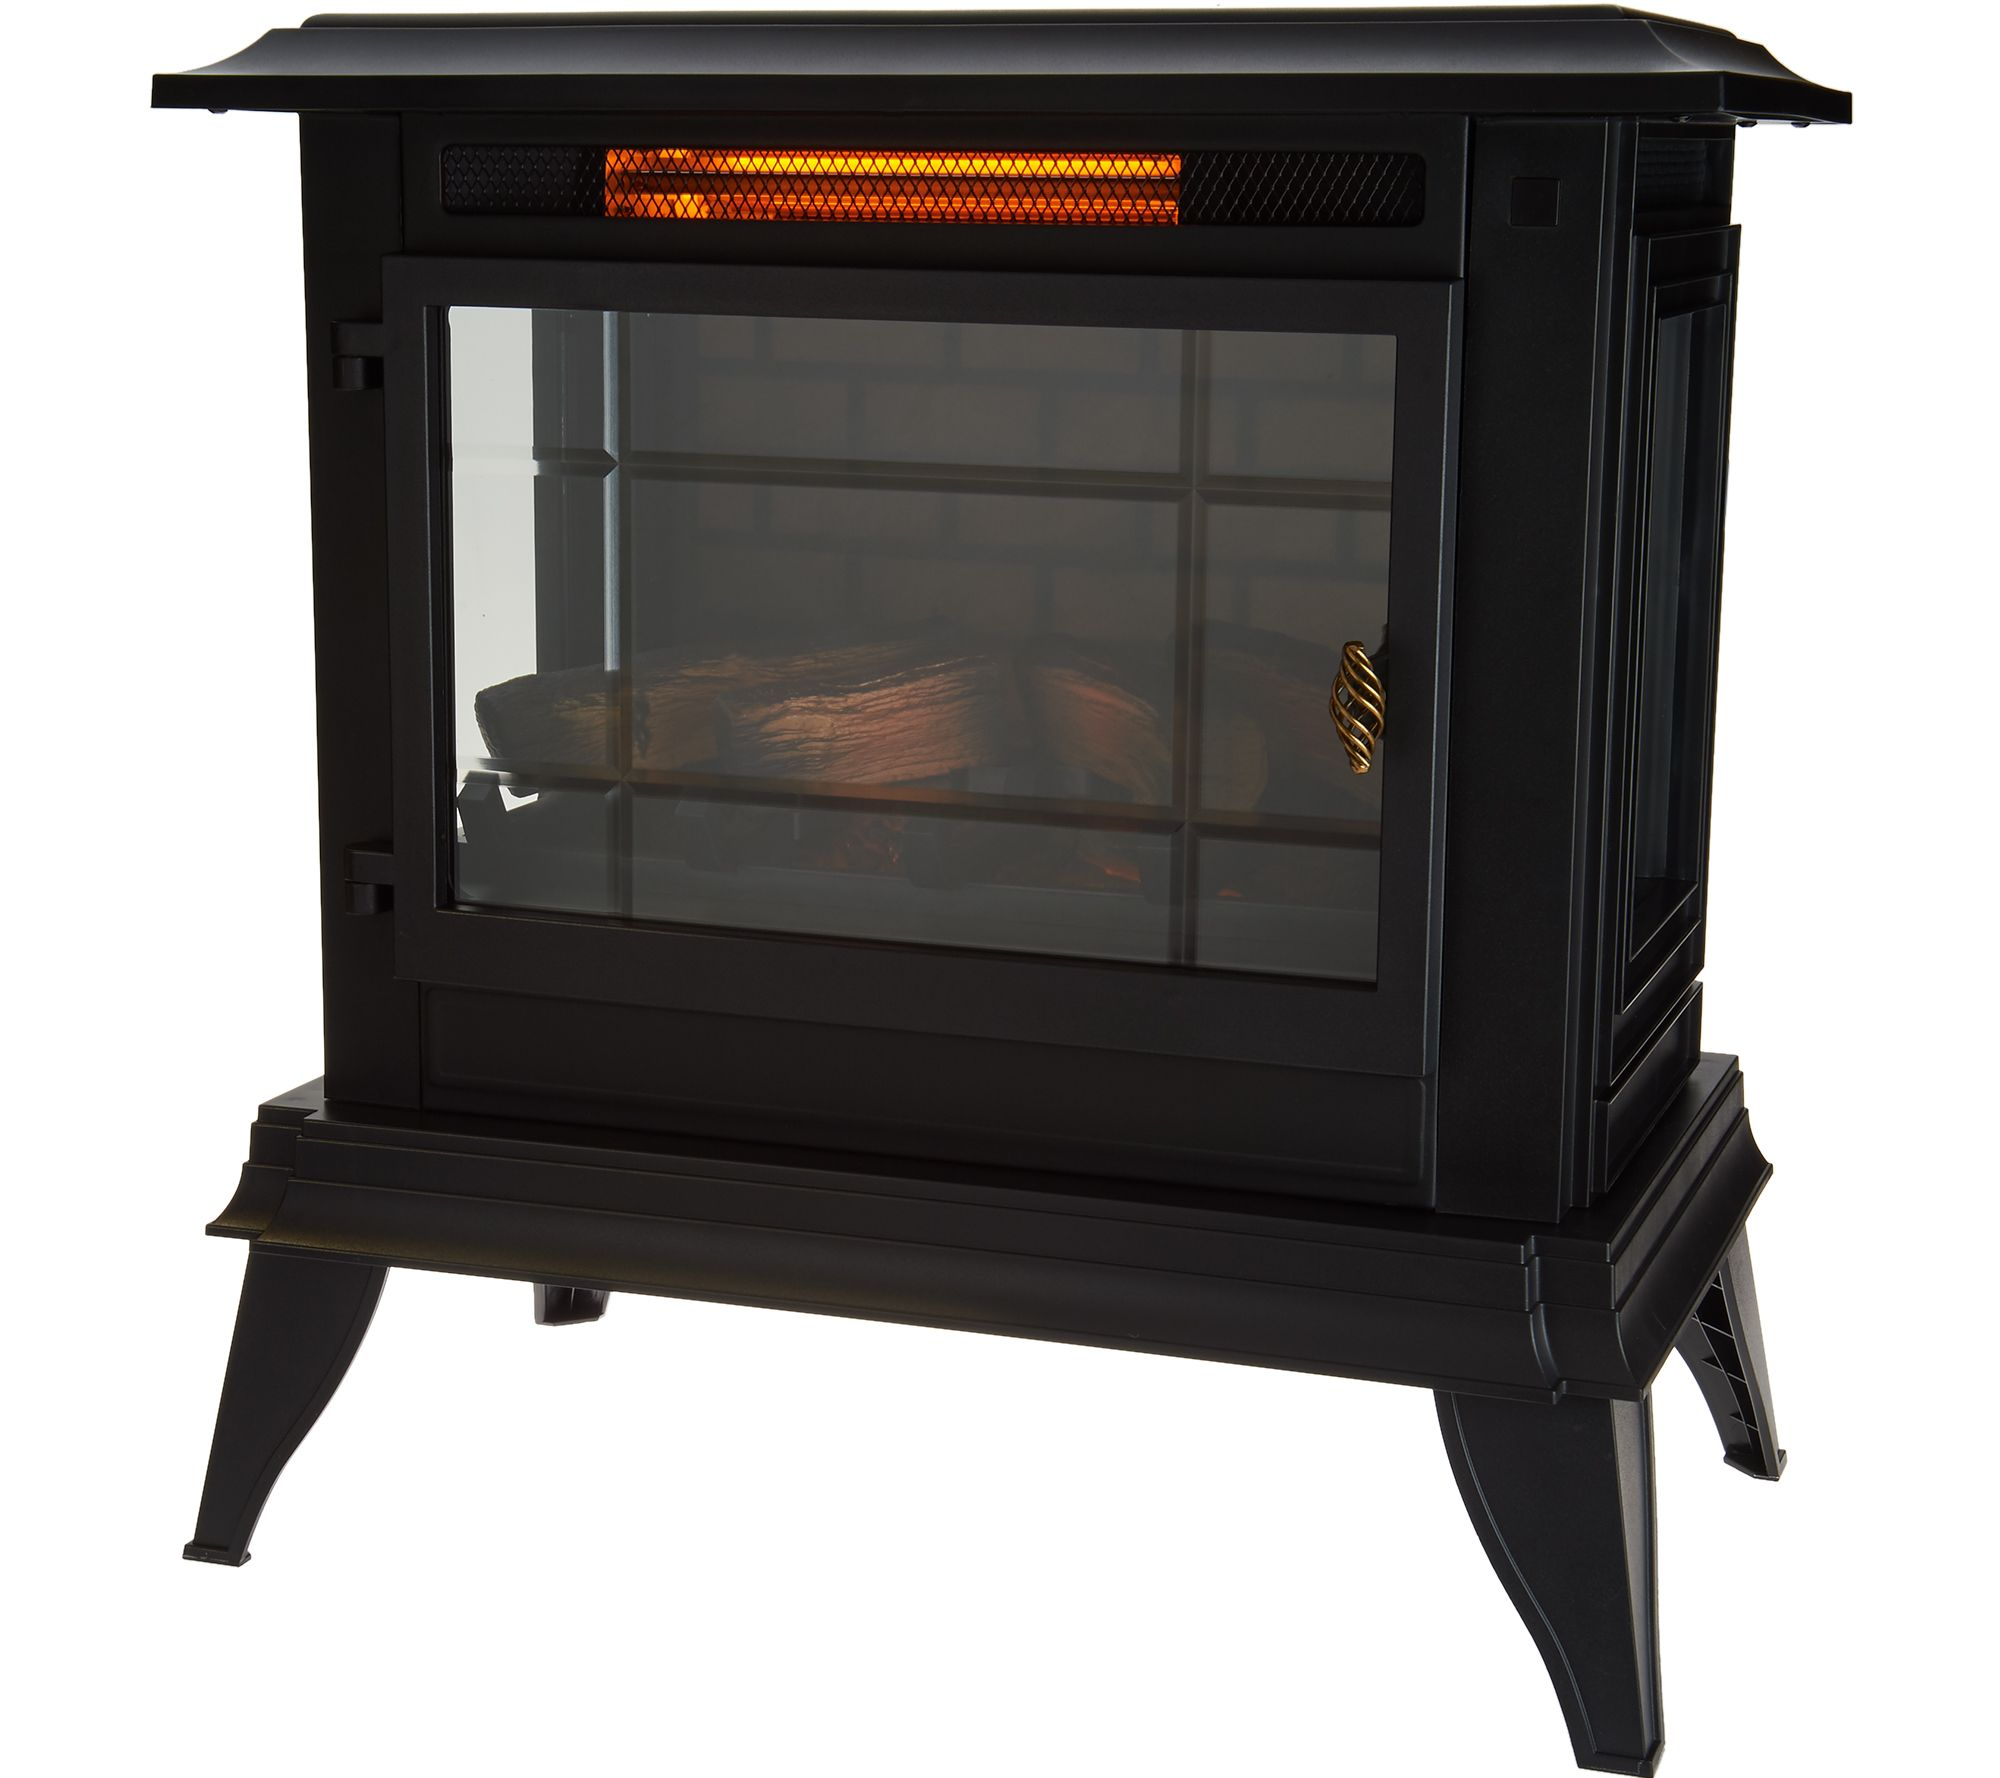 v35039.001 duraflame portable fireplaces & electric heaters for the home  at readyjetset.co